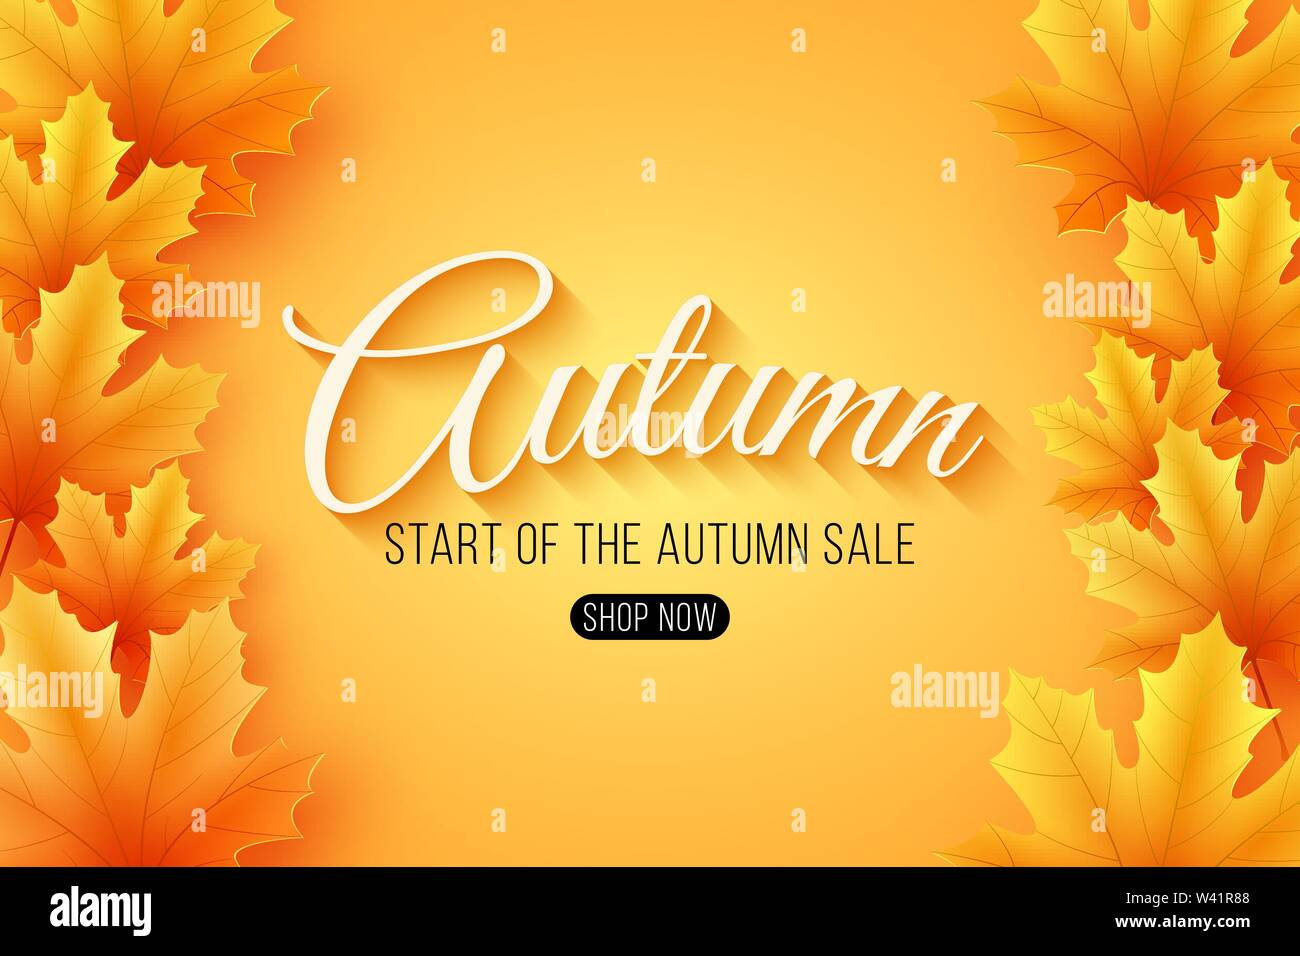 Web banner for Autumn sale with lettering. Seasonal poster with autumn leaves. Maple leaf. Start of a seasonal sale. Vector illustration. EPS 10 - Stock Image